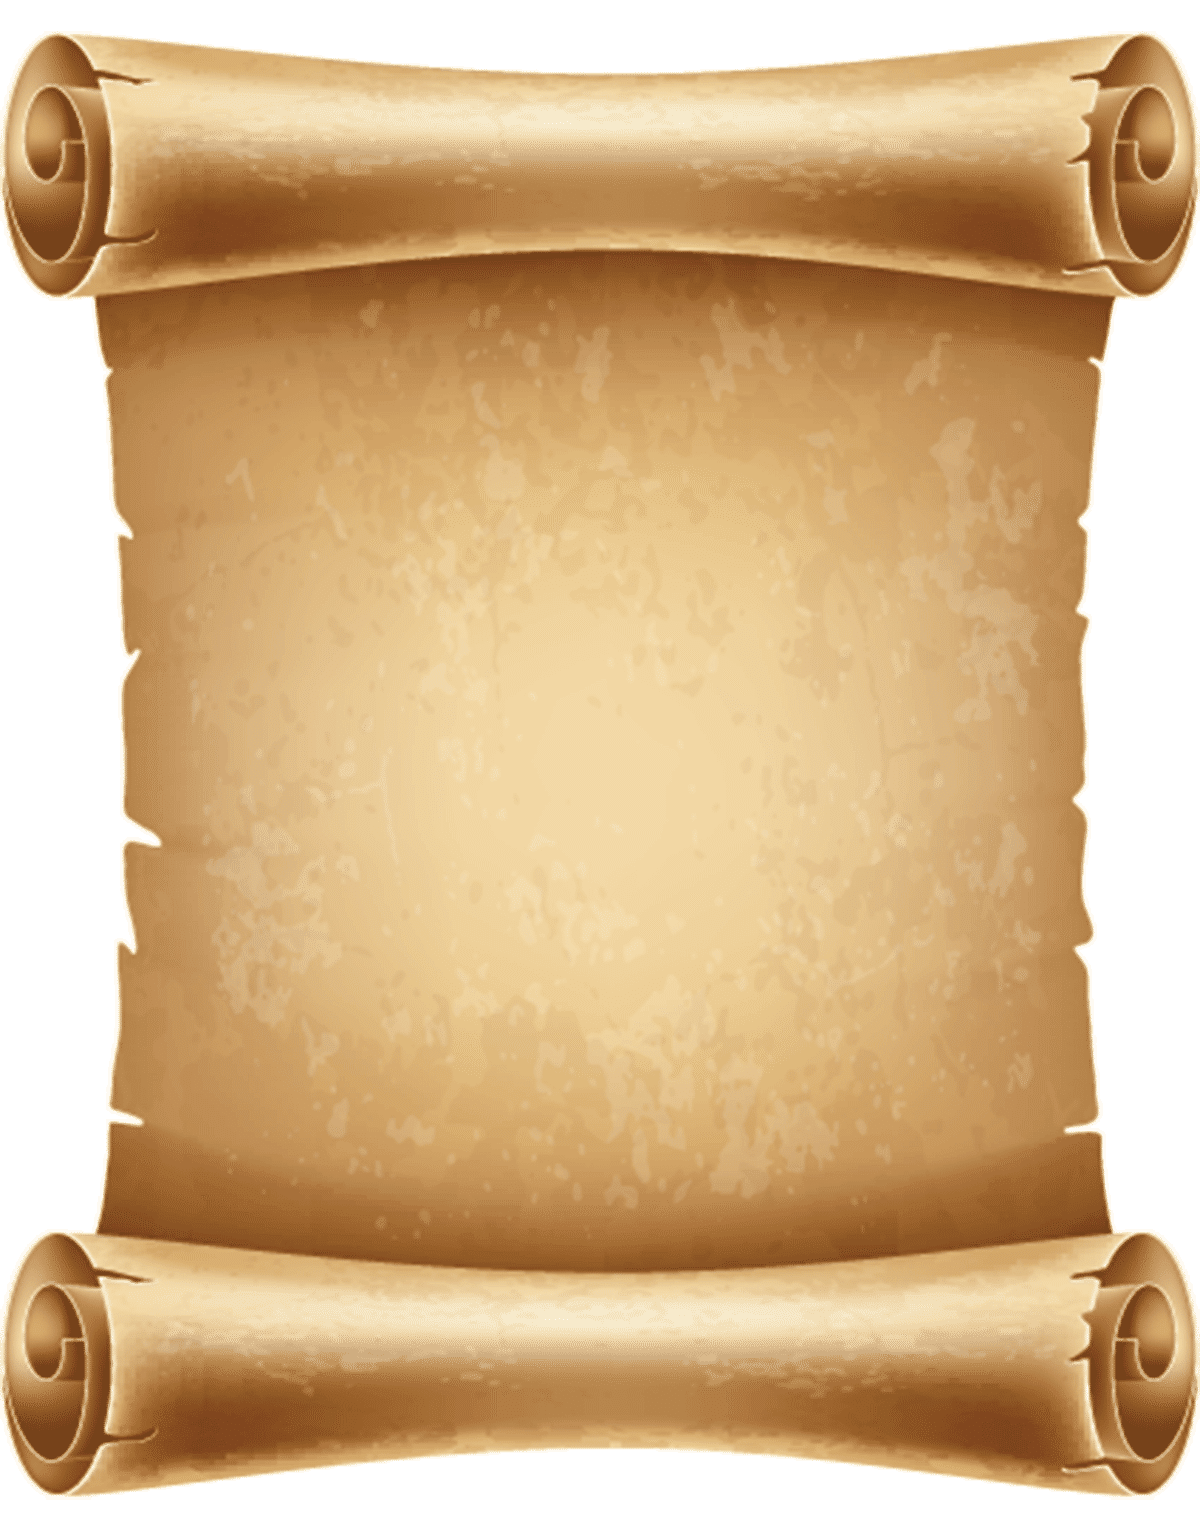 King-Sealer-scroll-paper-background